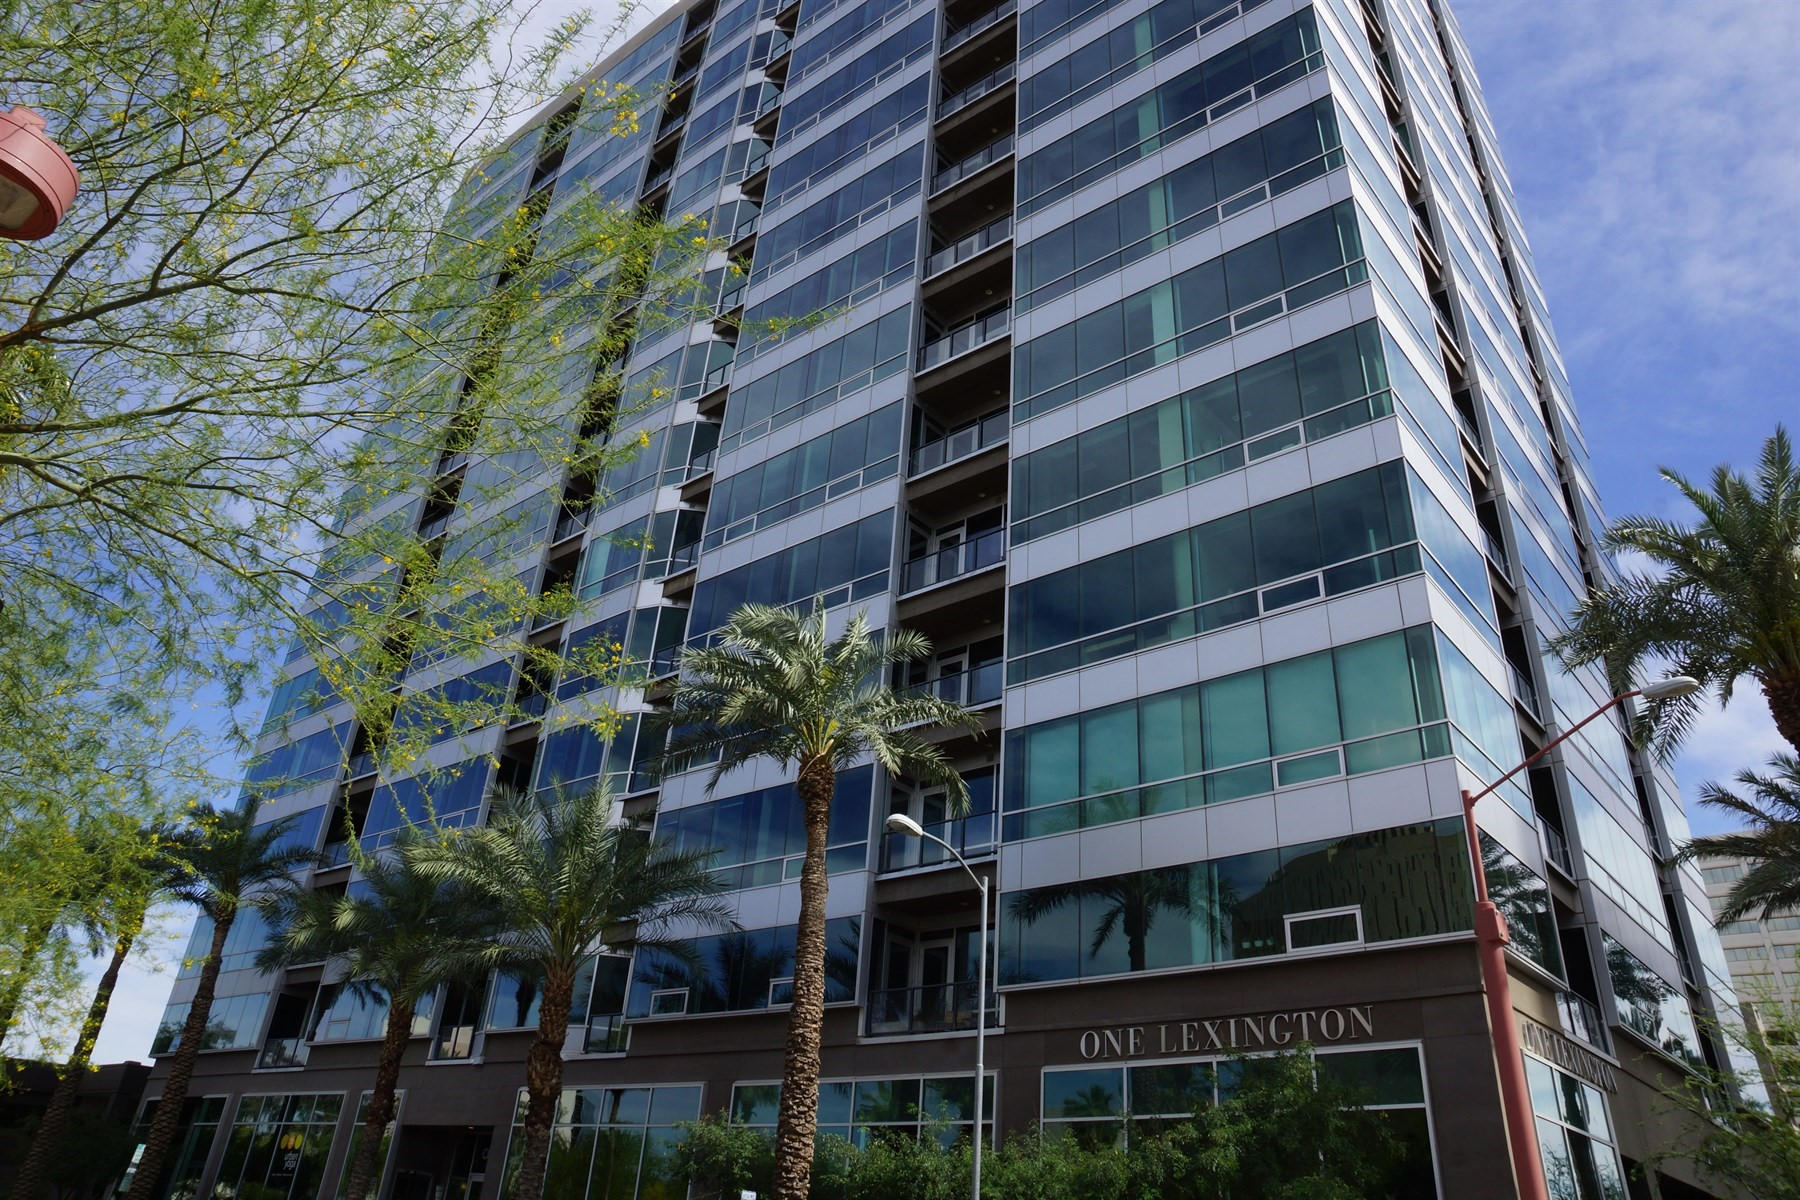 Apartamento para Venda às Stunning 11th floor unit 1 E Lexington Ave #1101 Phoenix, Arizona, 85012 Estados Unidos